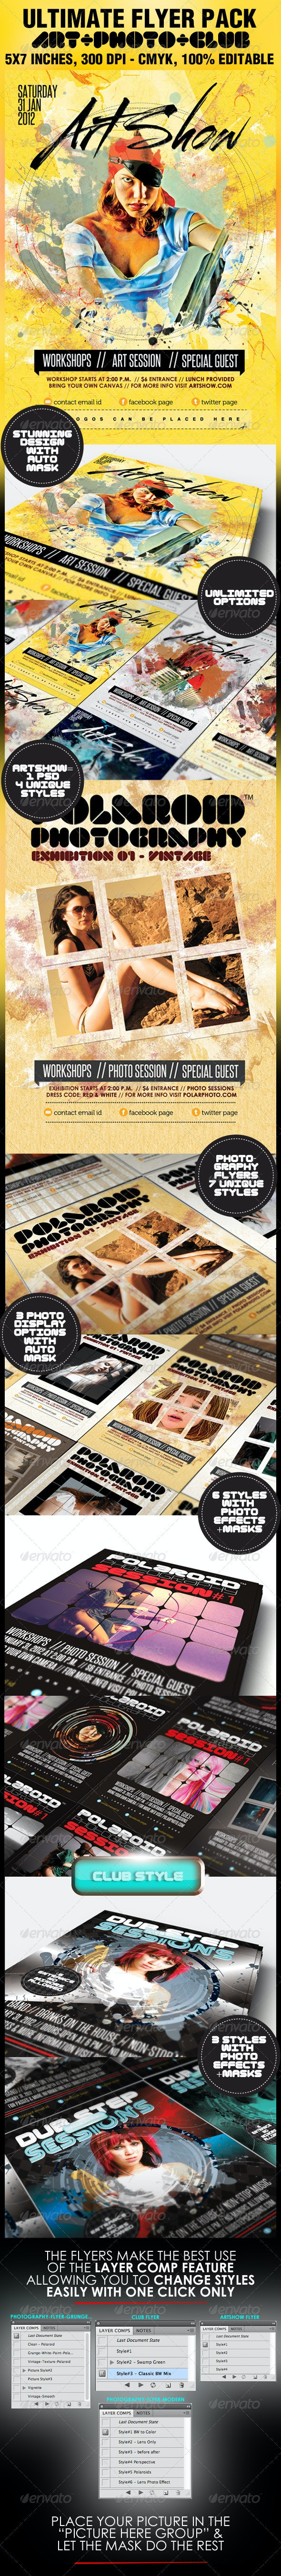 Art, Photography & Club Flyers - The Ultimate Pack - Miscellaneous Events